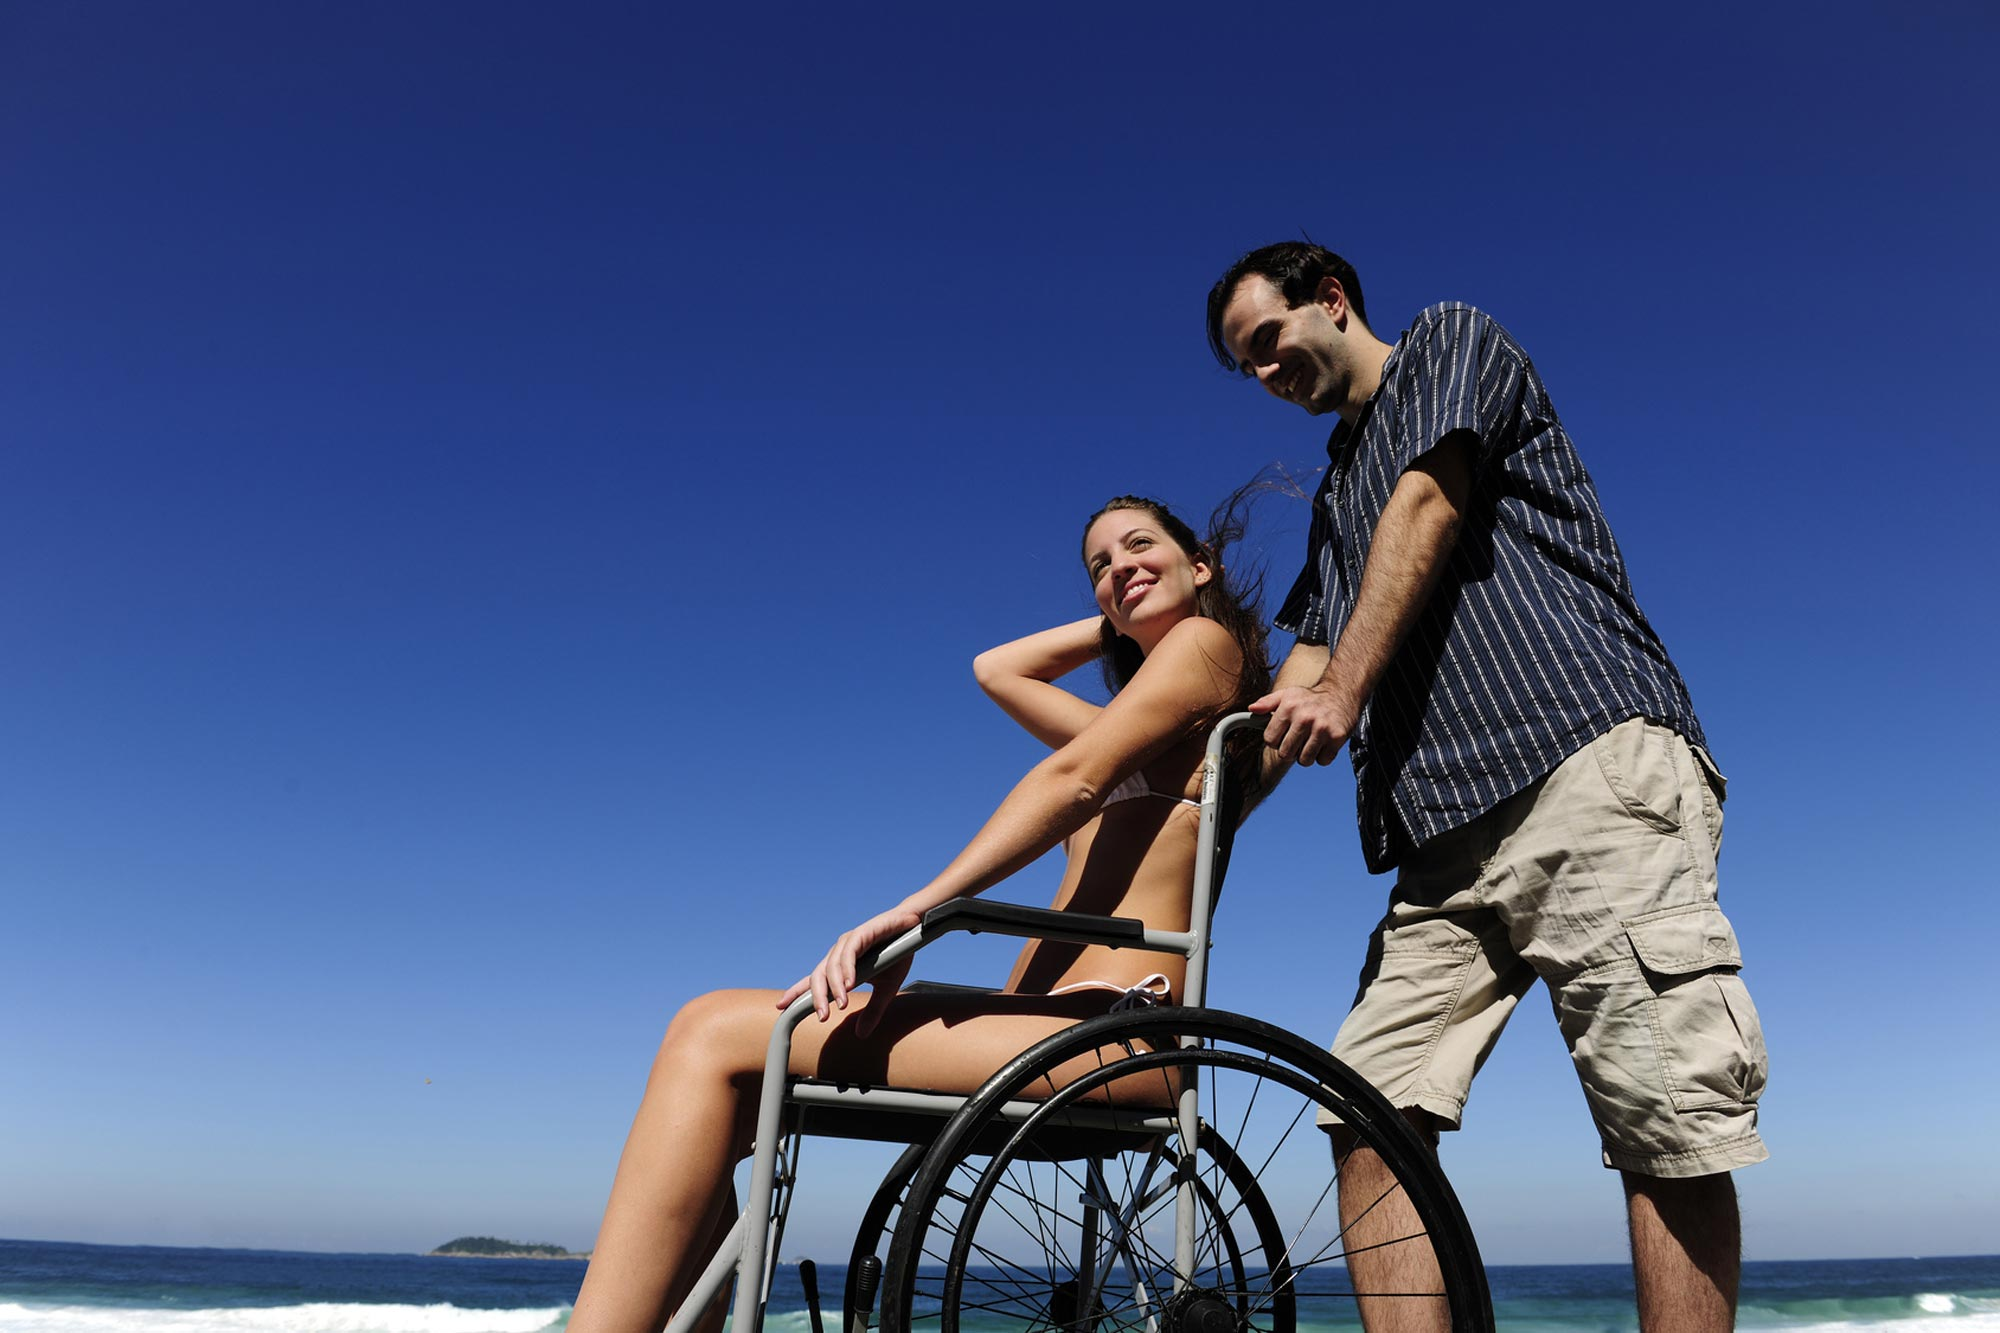 Free online dating sites for disabled